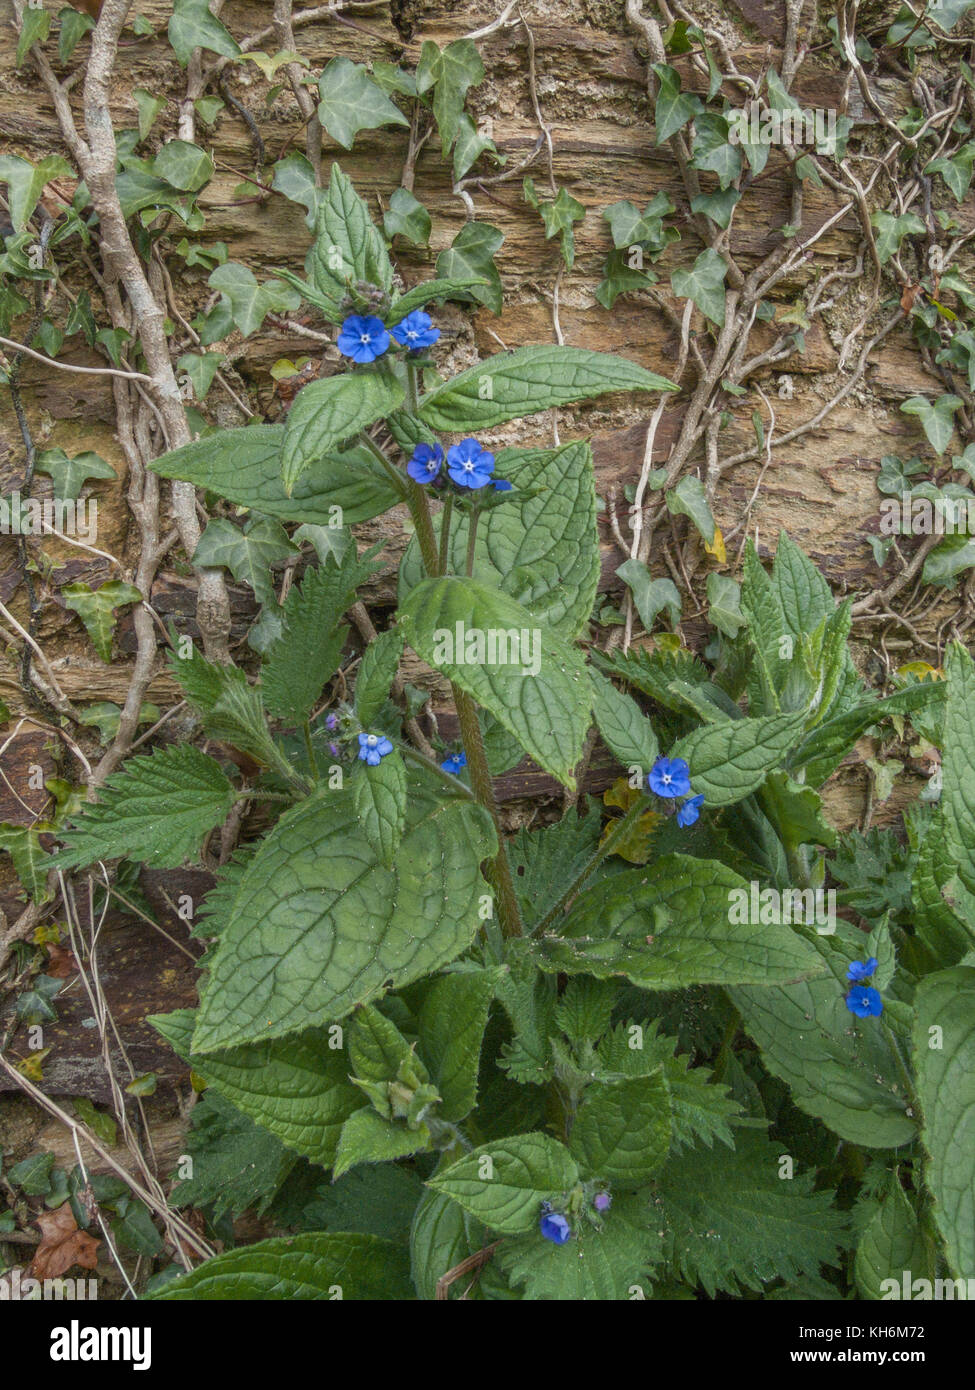 Example of Green Alkanet (Pentaglottis sempervirens) growing next to a farm wall. - Stock Image